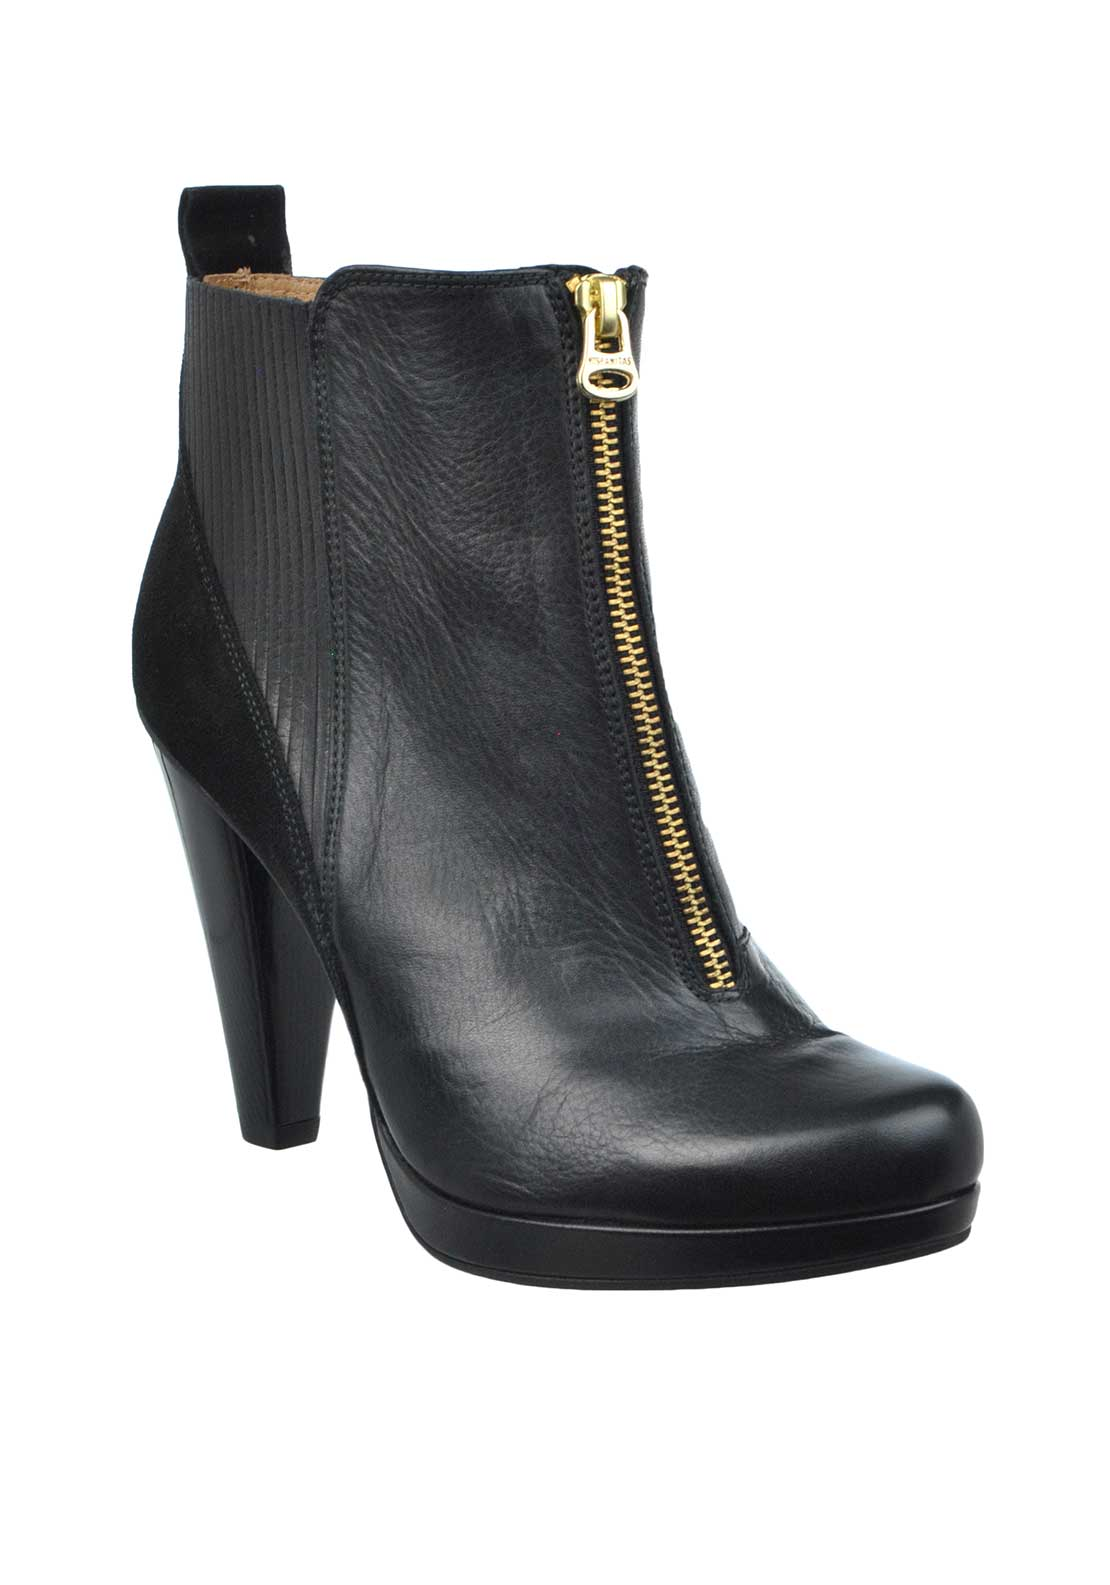 Hispanitas Leather Zip Detail Heeled Ankle Boots, Black